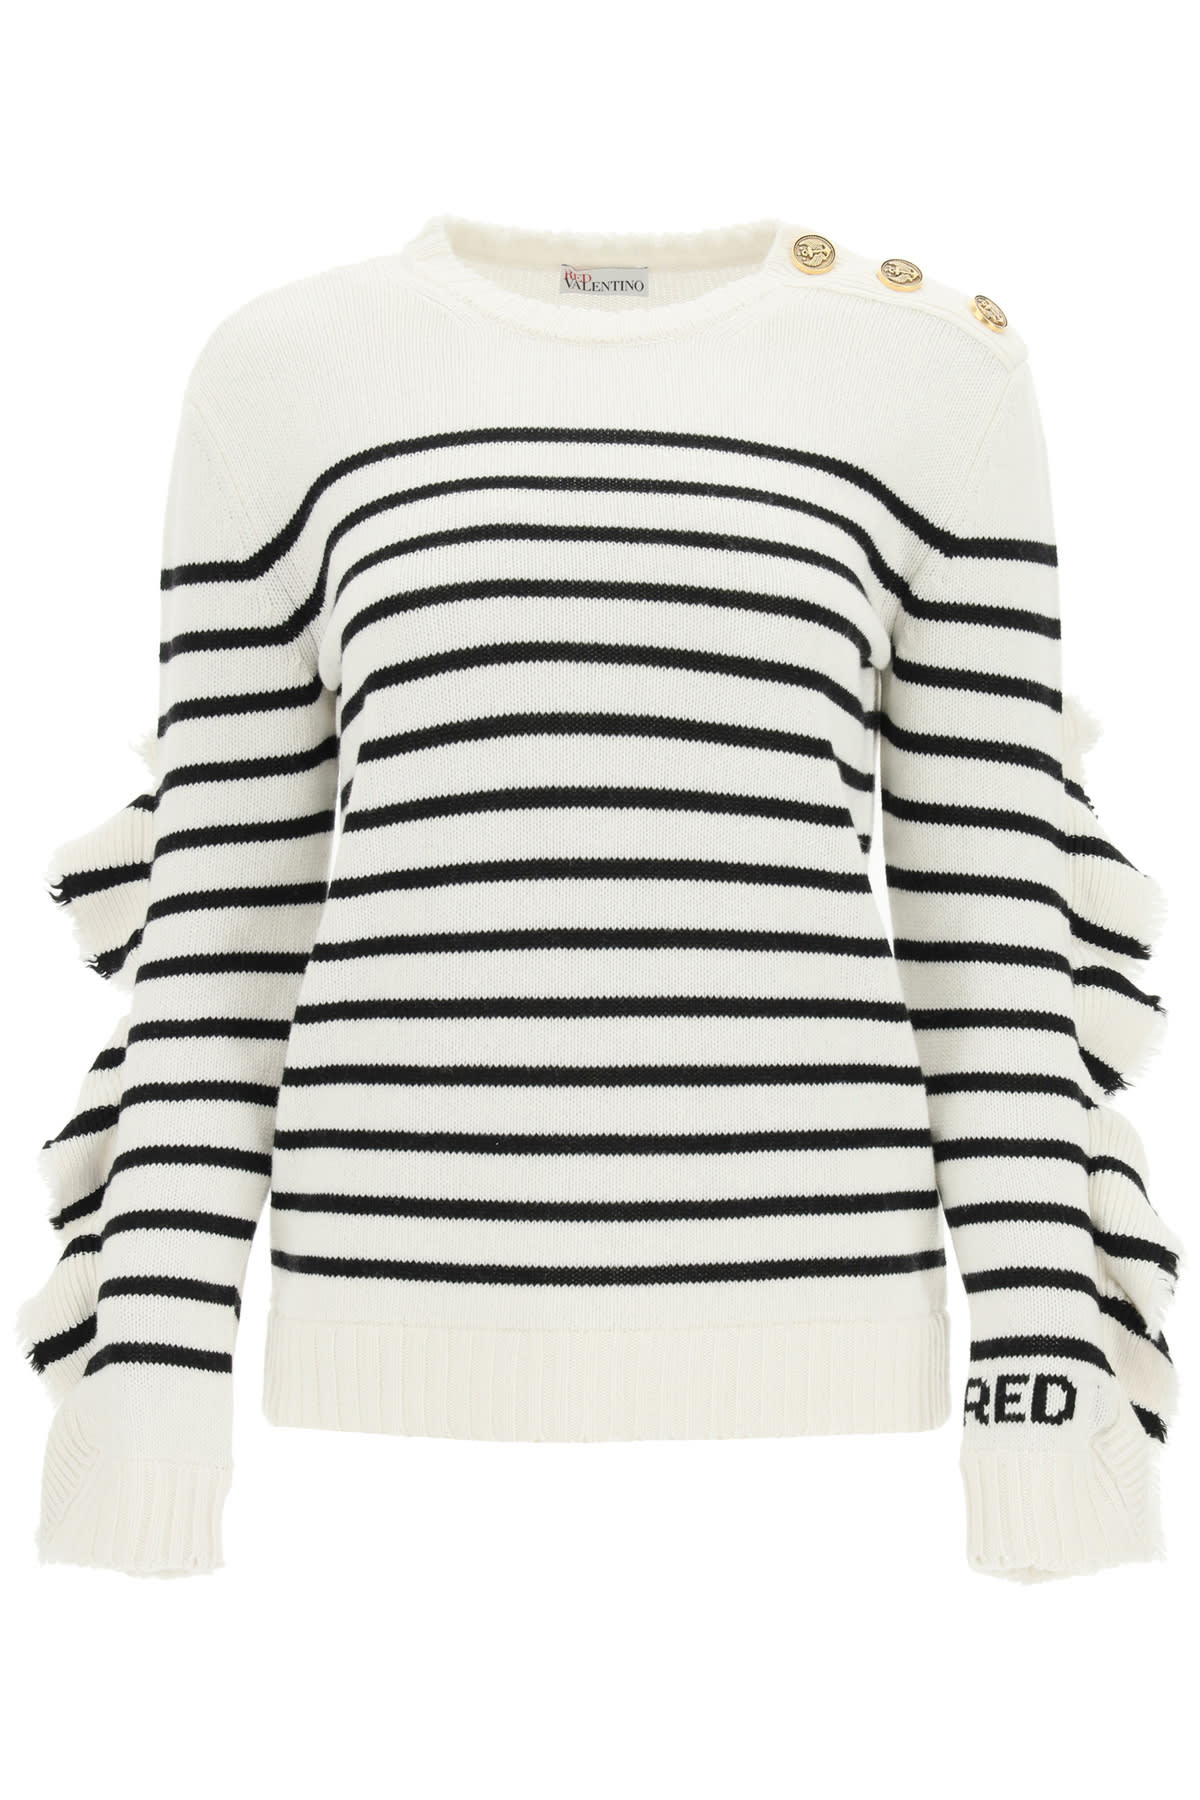 RED Valentino Striped Sweater With Ruffles